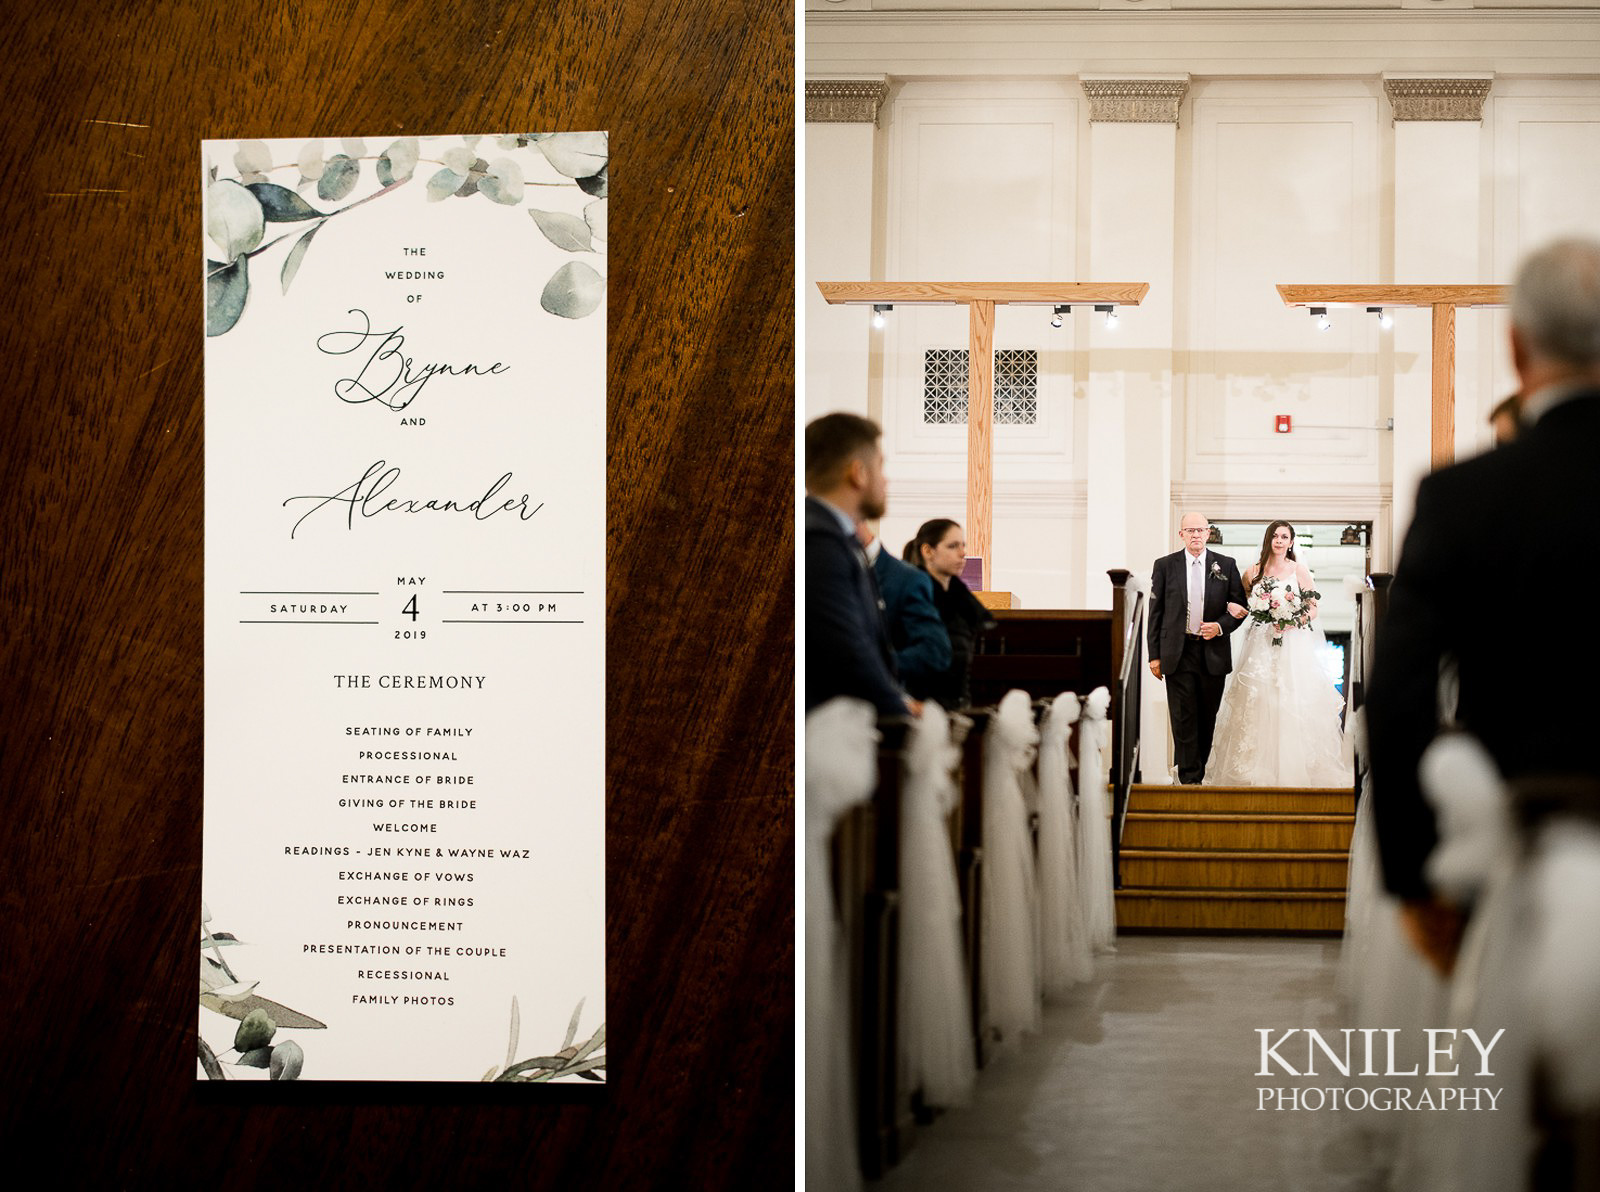 16-Karpeles-Manuscript-Library-Museum-Wedding-Buffalo-NY-Kniley-Photography.jpg